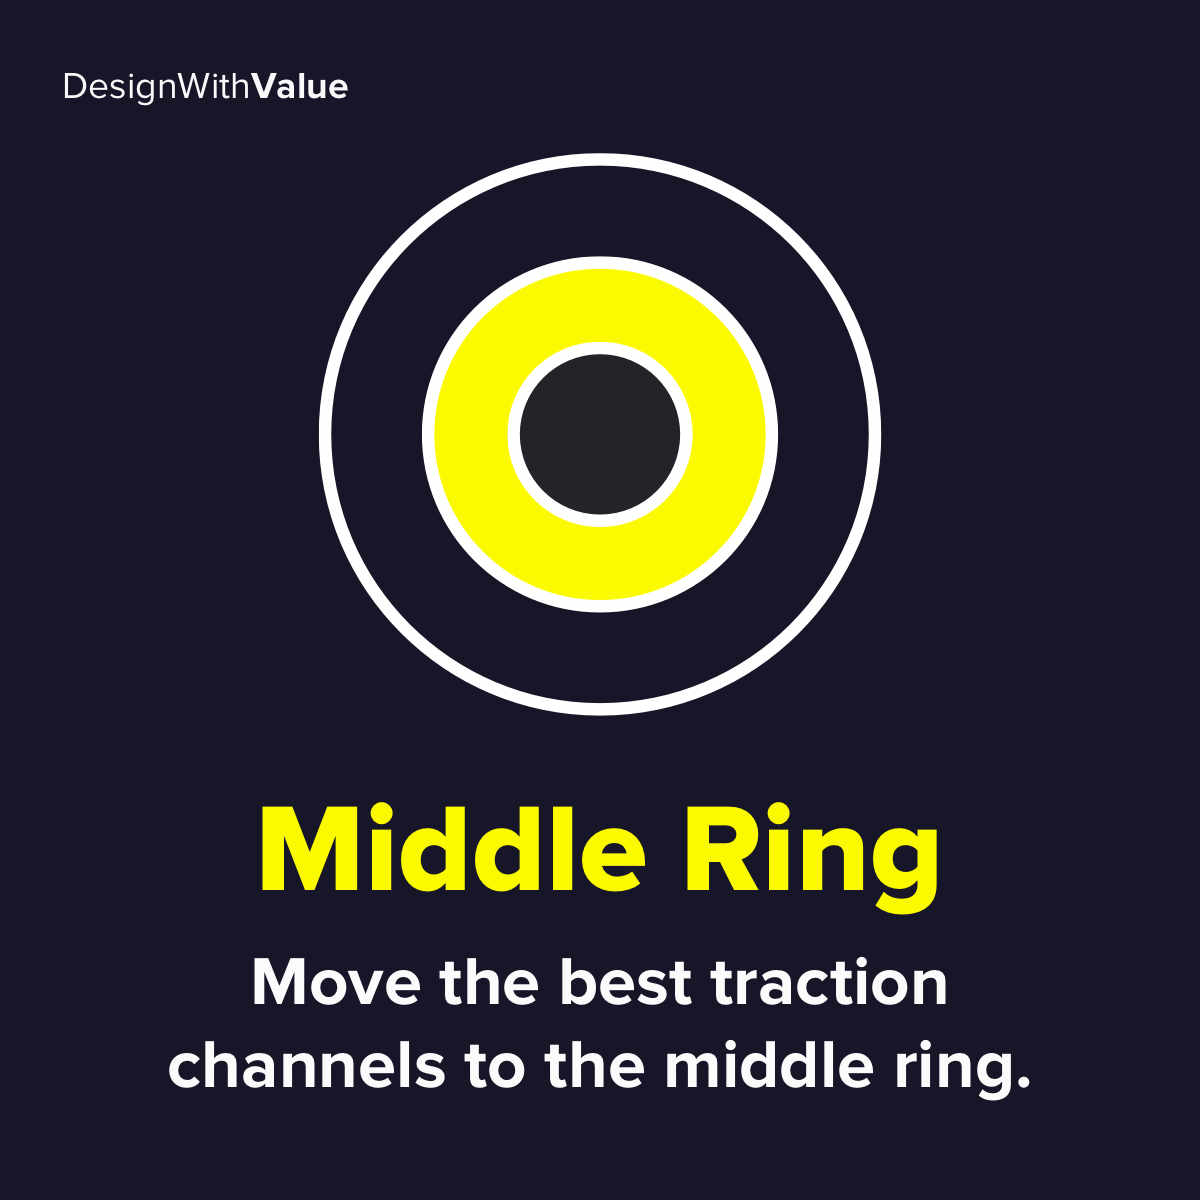 Middle ring: Move the best traction channels to the middle ring.